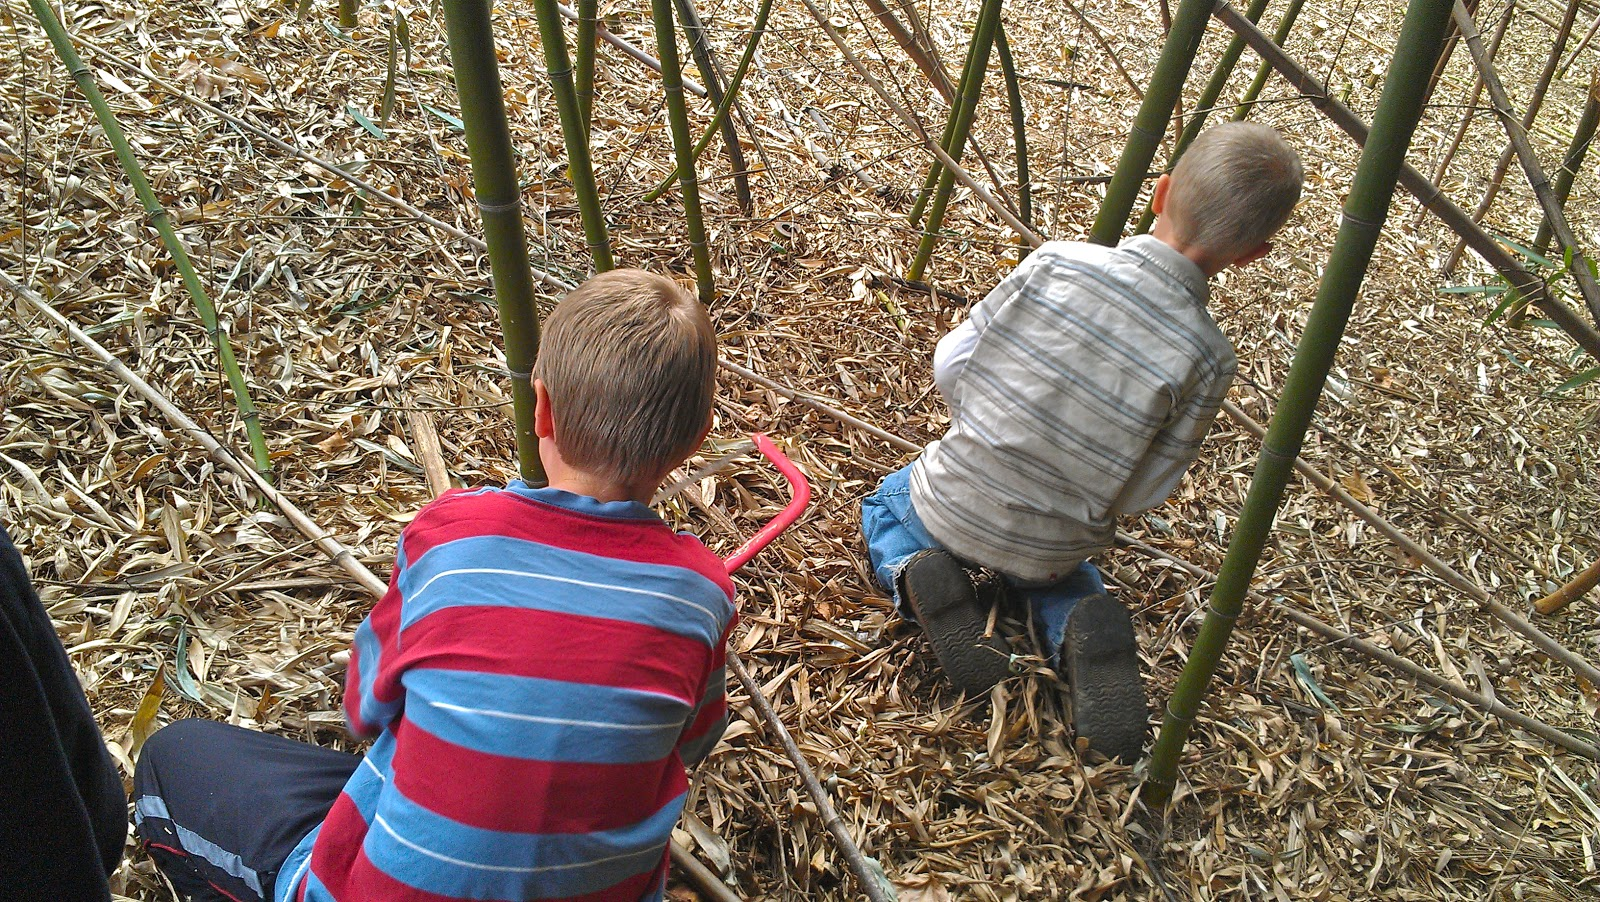 It's a Boy's Life: In the Bamboo Forest